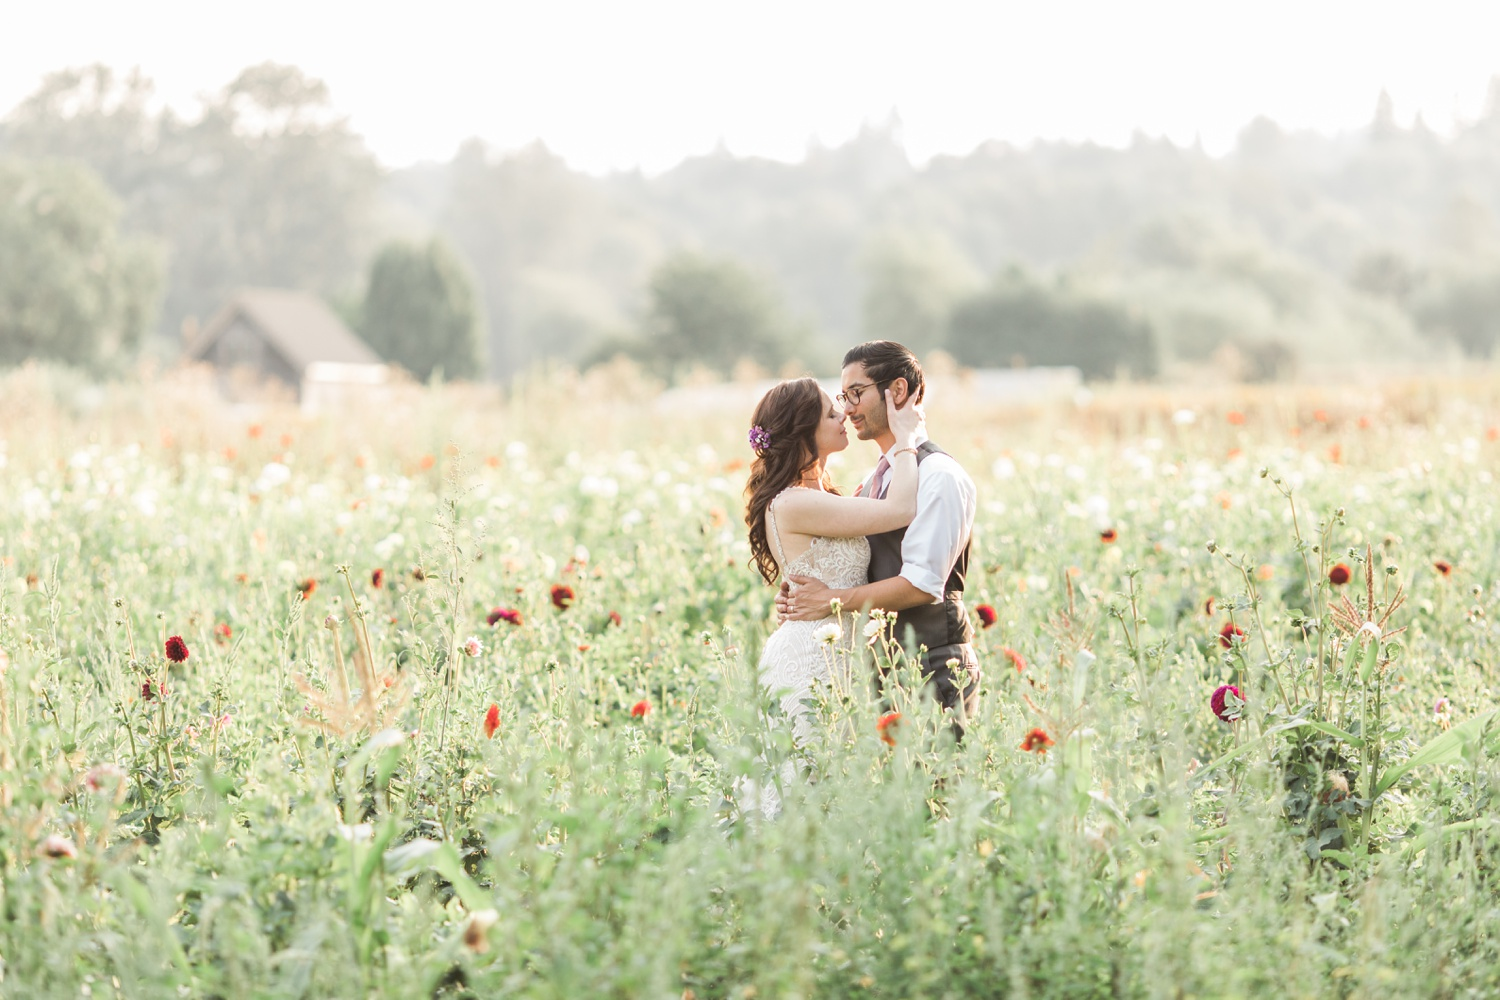 A bride and groom kiss in a field of flowers before their wedding at Woodland Meadow Farms in Snohomish, a wedding venue near Seattle, WA. | Joanna Monger Photography | Seattle & Snohomish Photographer